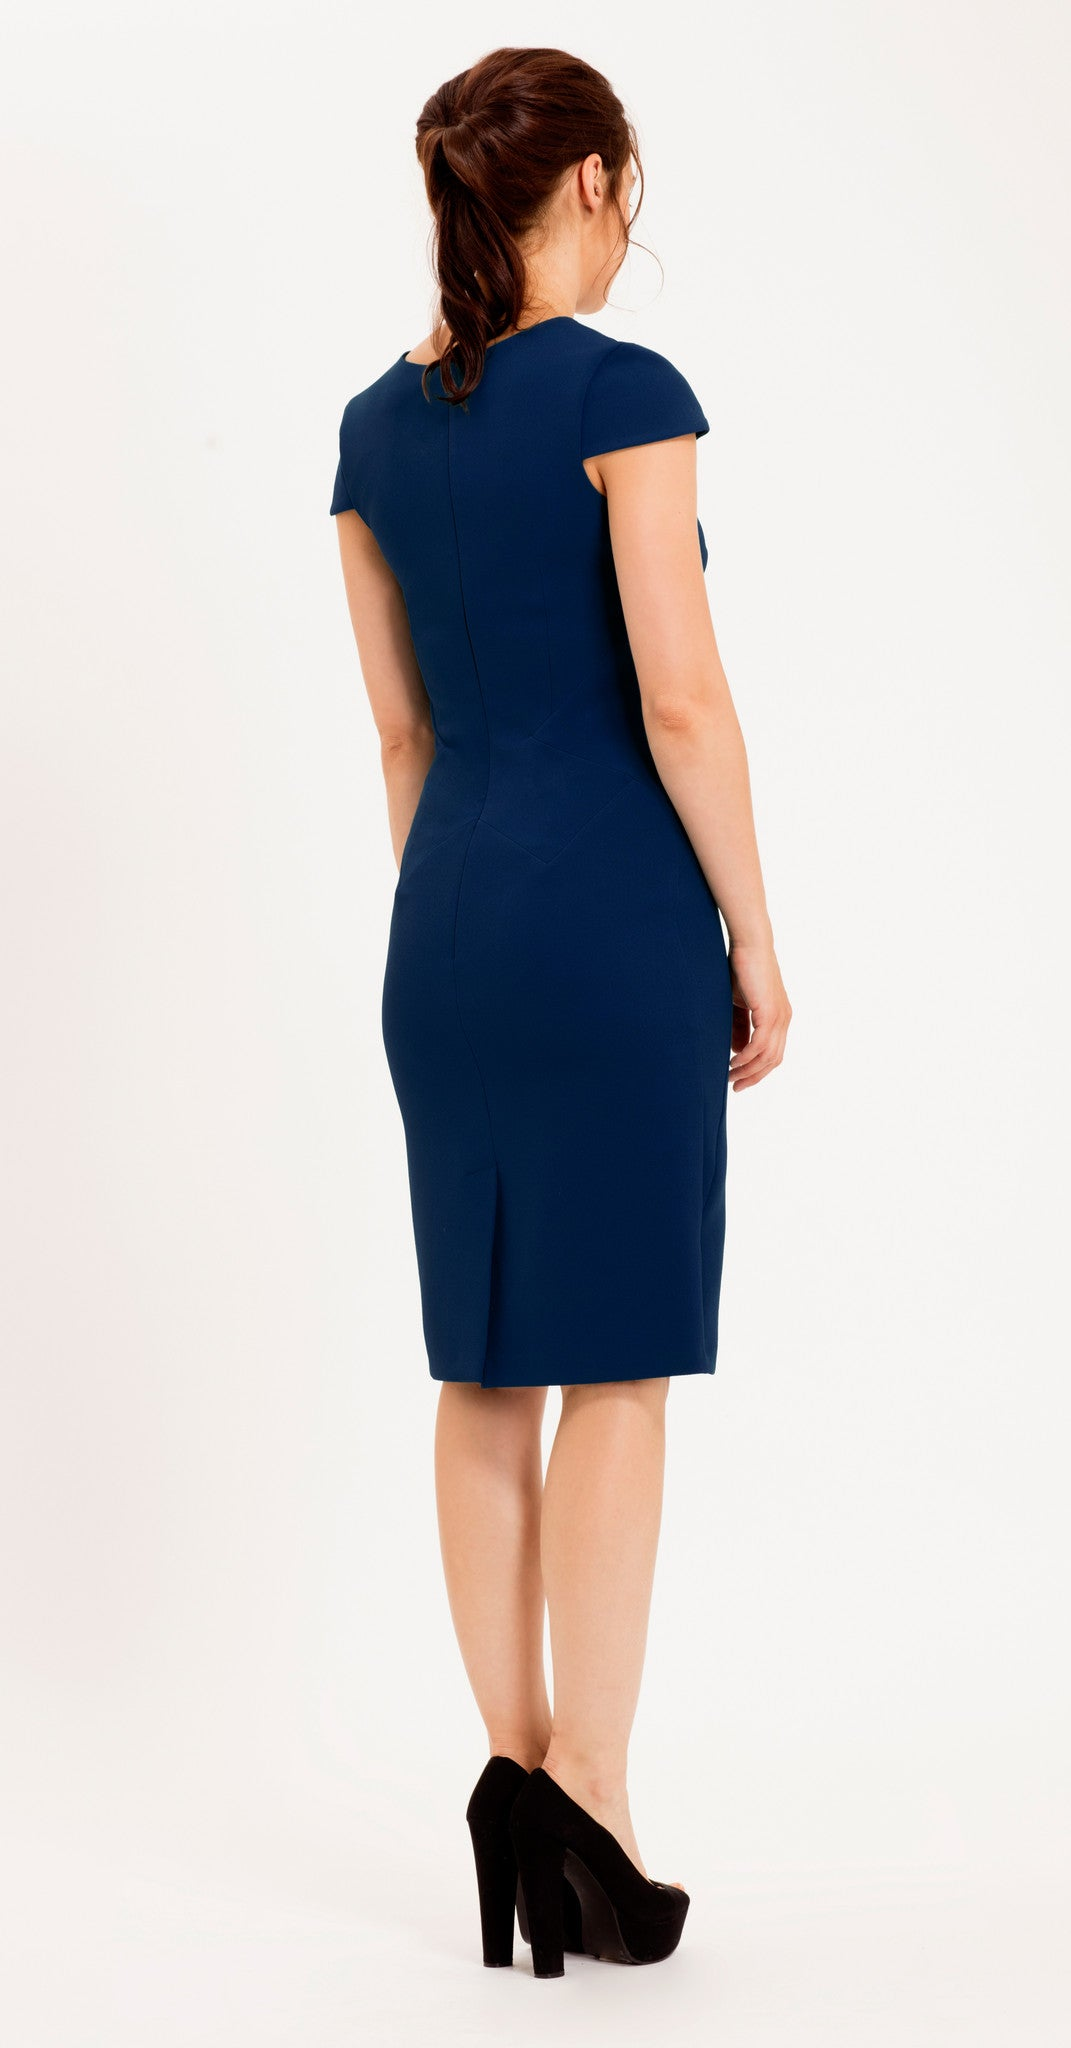 CAMBRIDGE DRESS NAVY